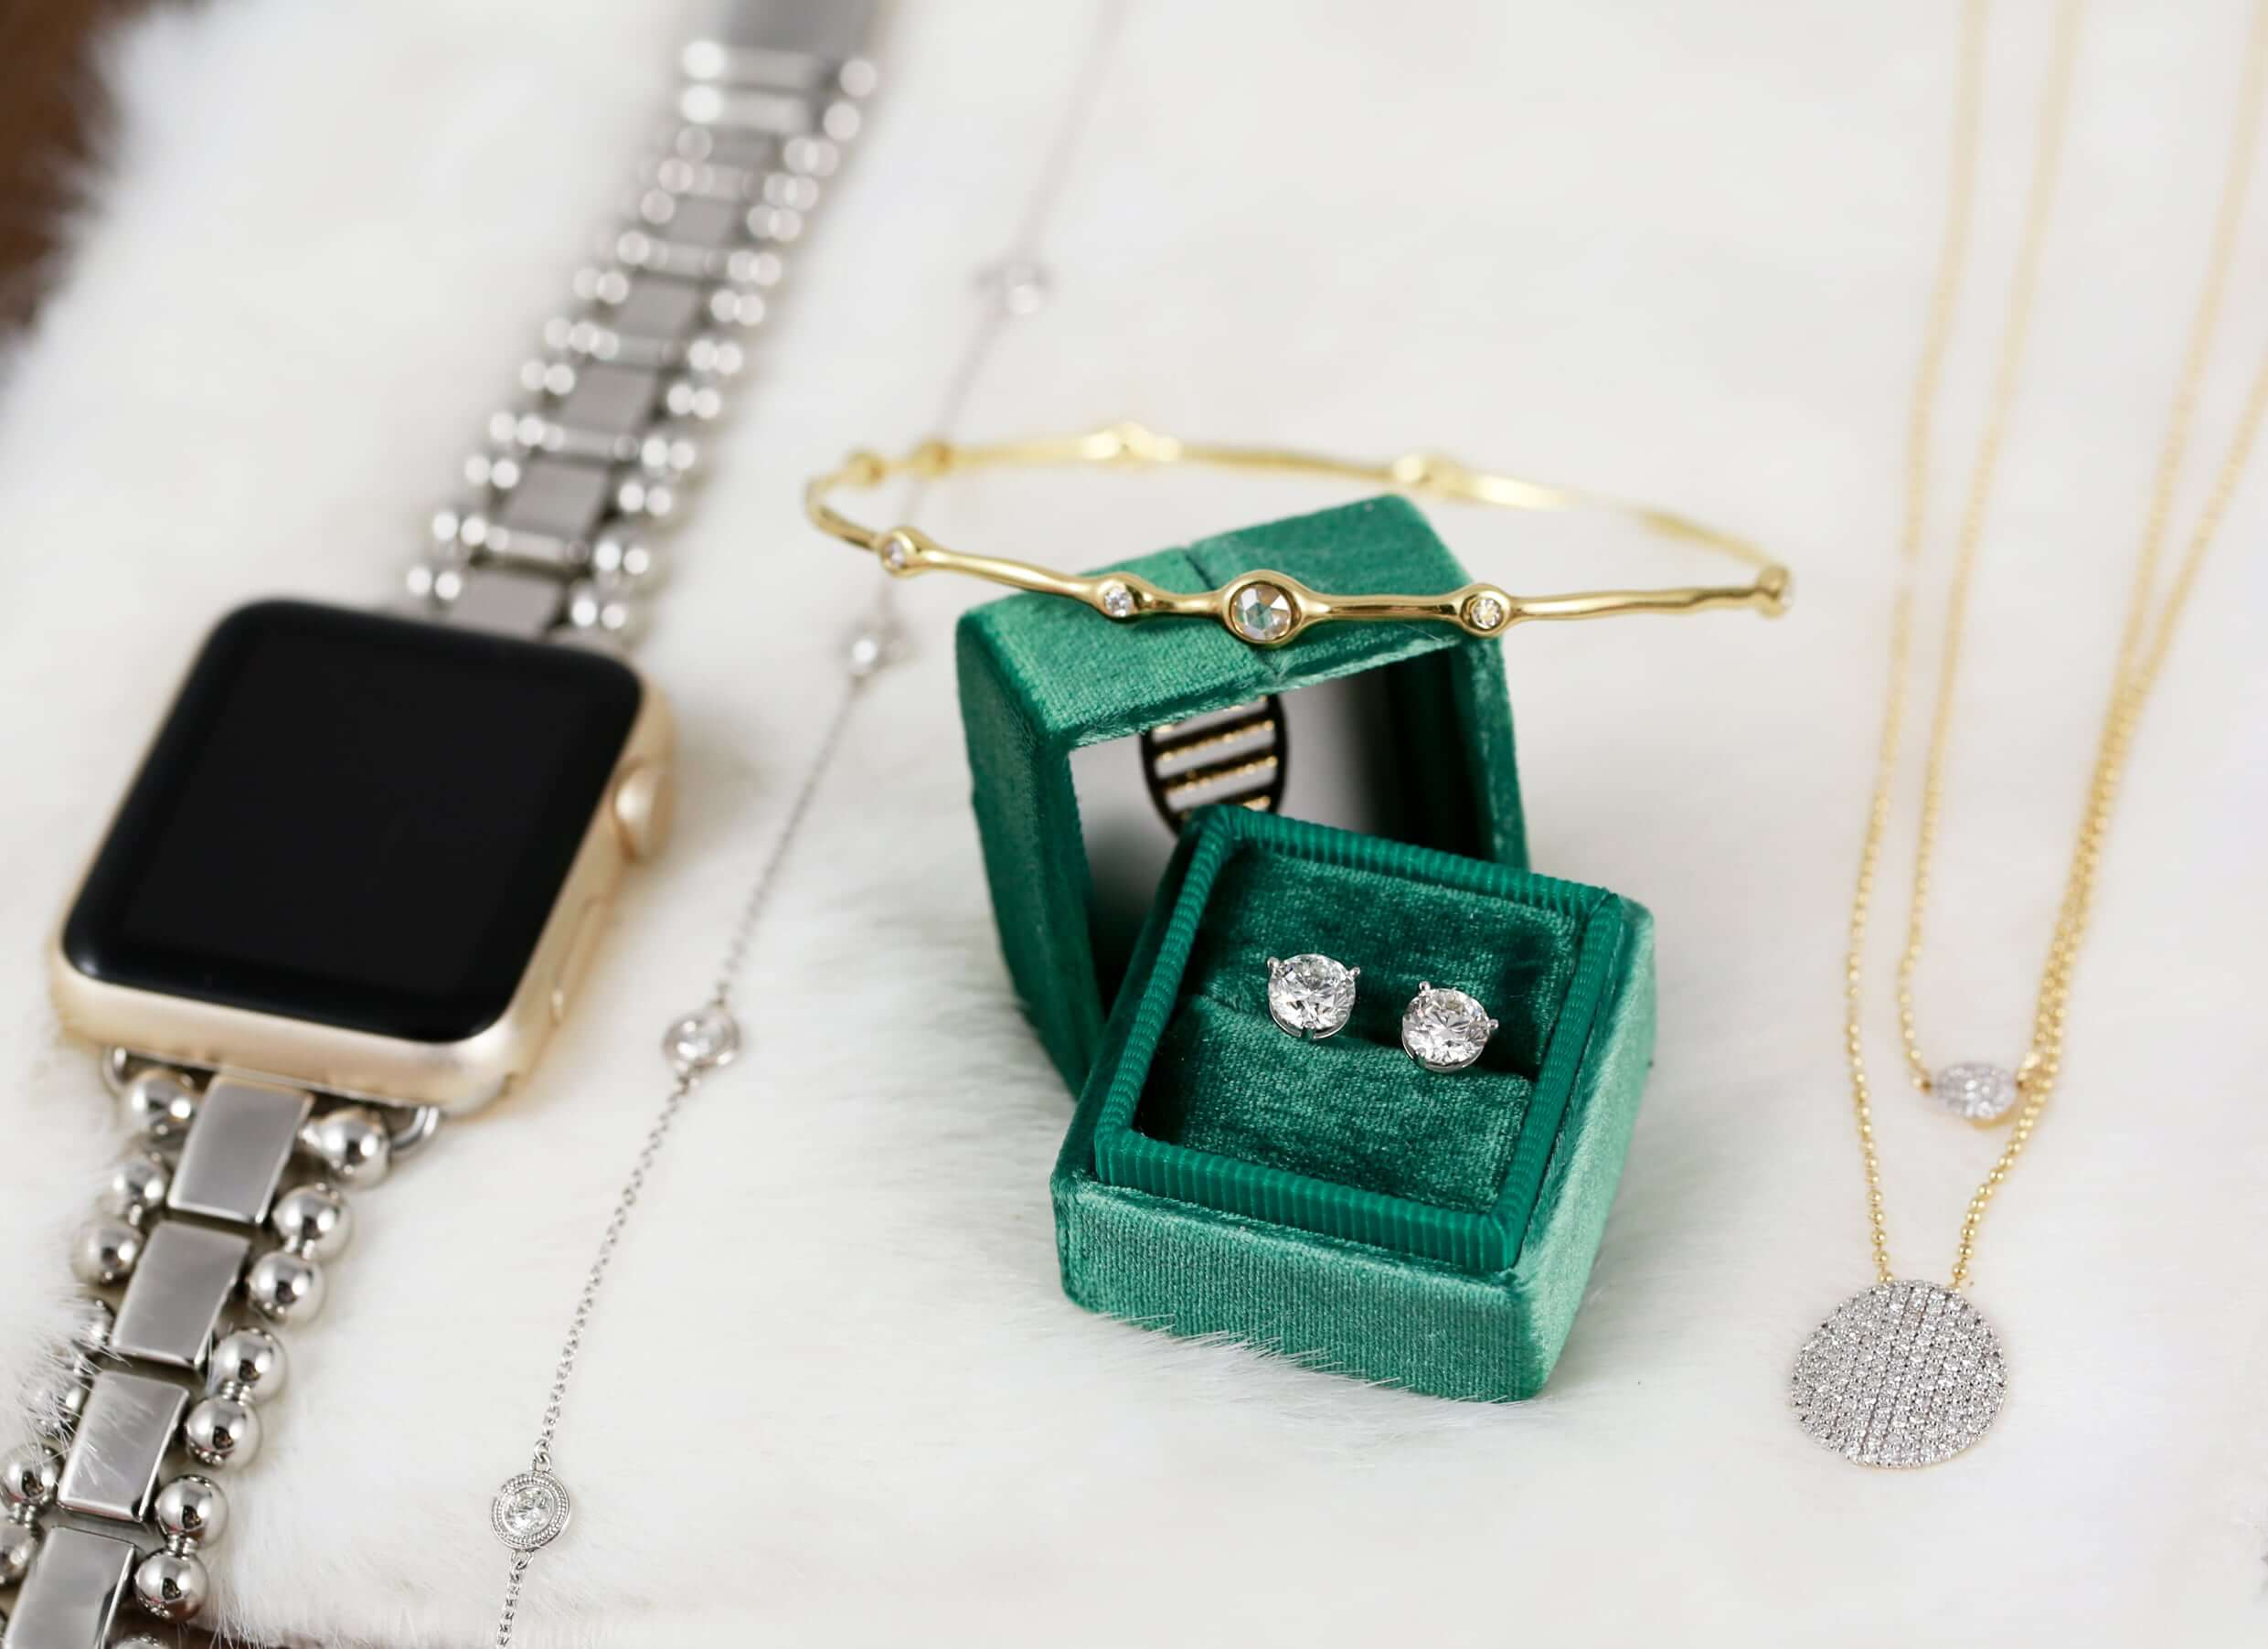 Styled image of watch, necklace, and earrings